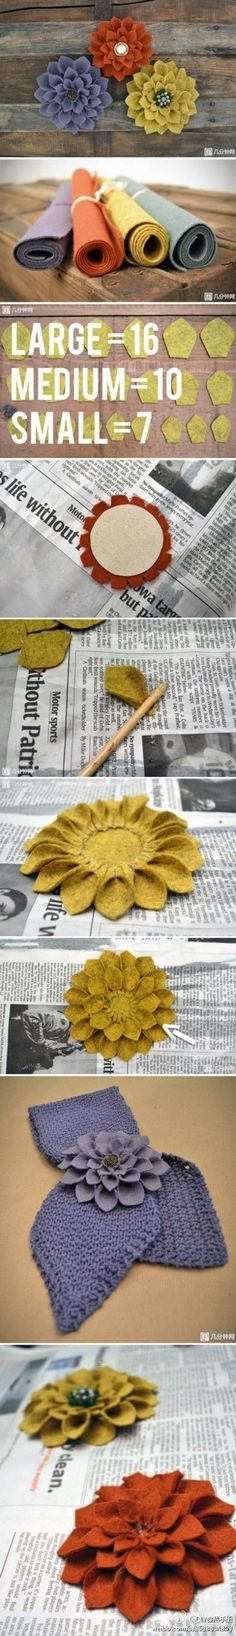 felt dahlia Felt Flowers, Diy Flowers, Handmade Flowers, Flower Crafts, Fabric Flowers, Felt Flower Diy, Flower Ideas, Felt Flower Tutorial, Felt Crafts